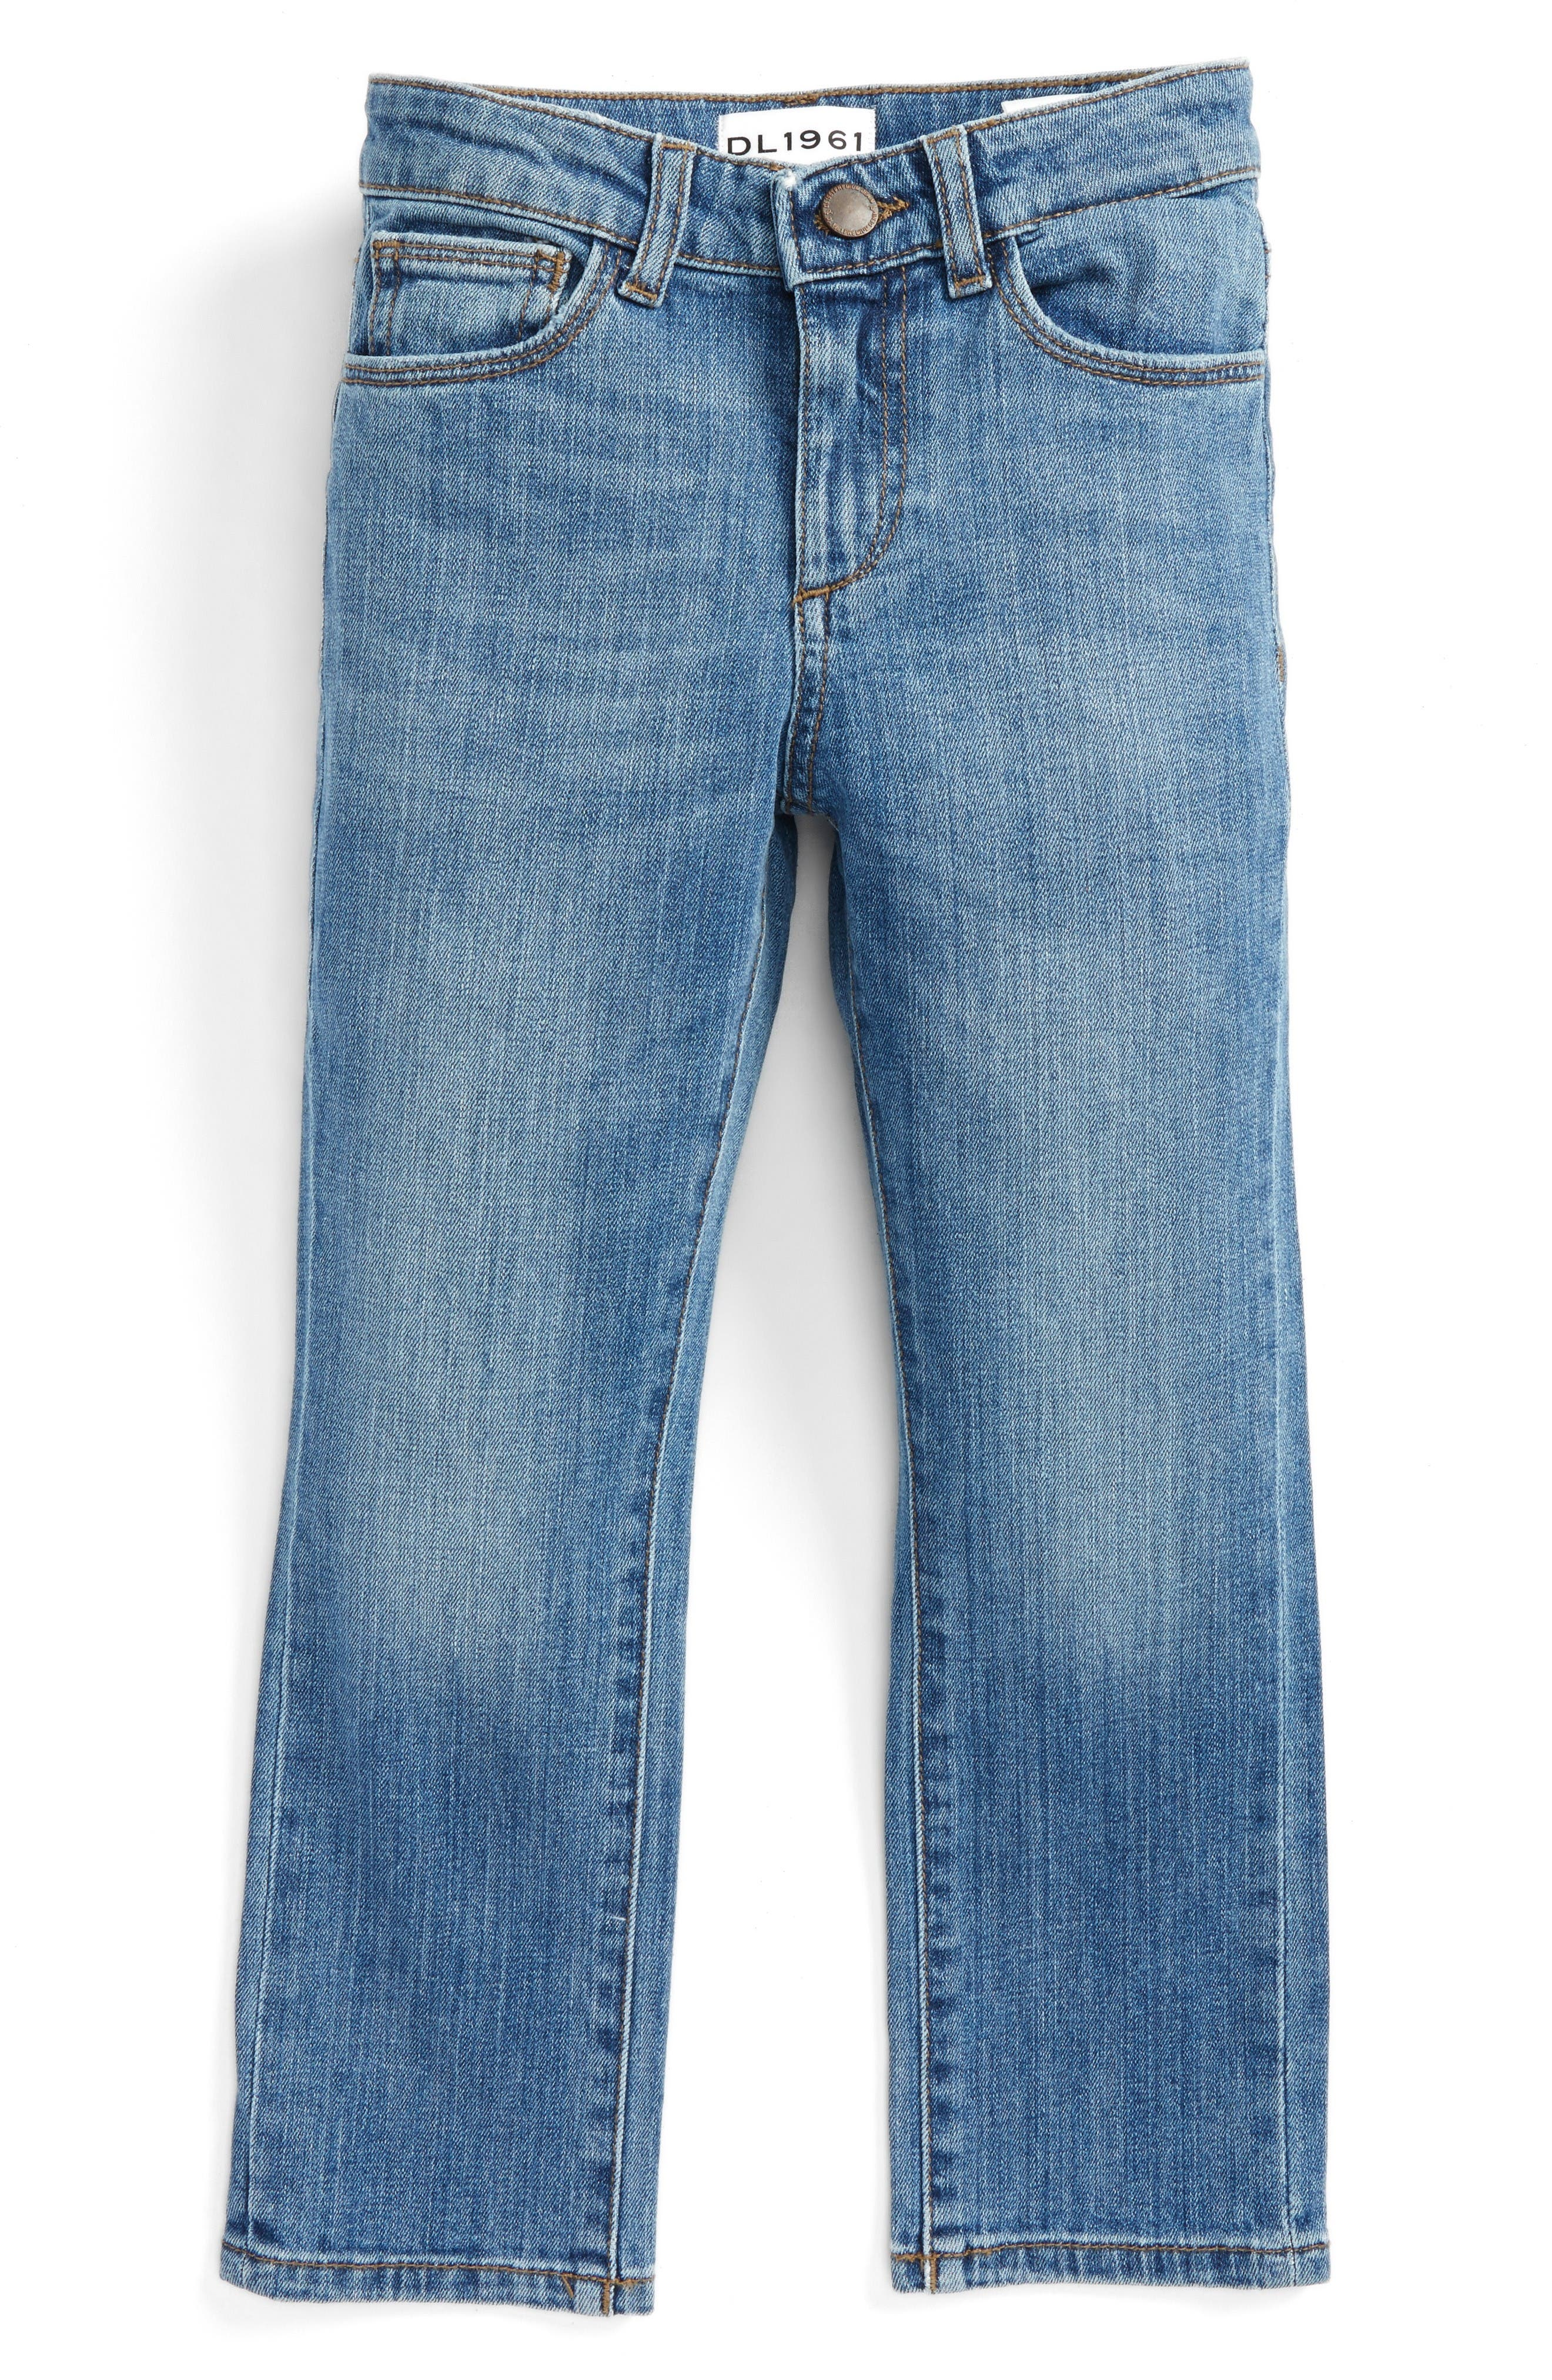 Brady Slim Fit Jeans,                             Main thumbnail 1, color,                             Rafter